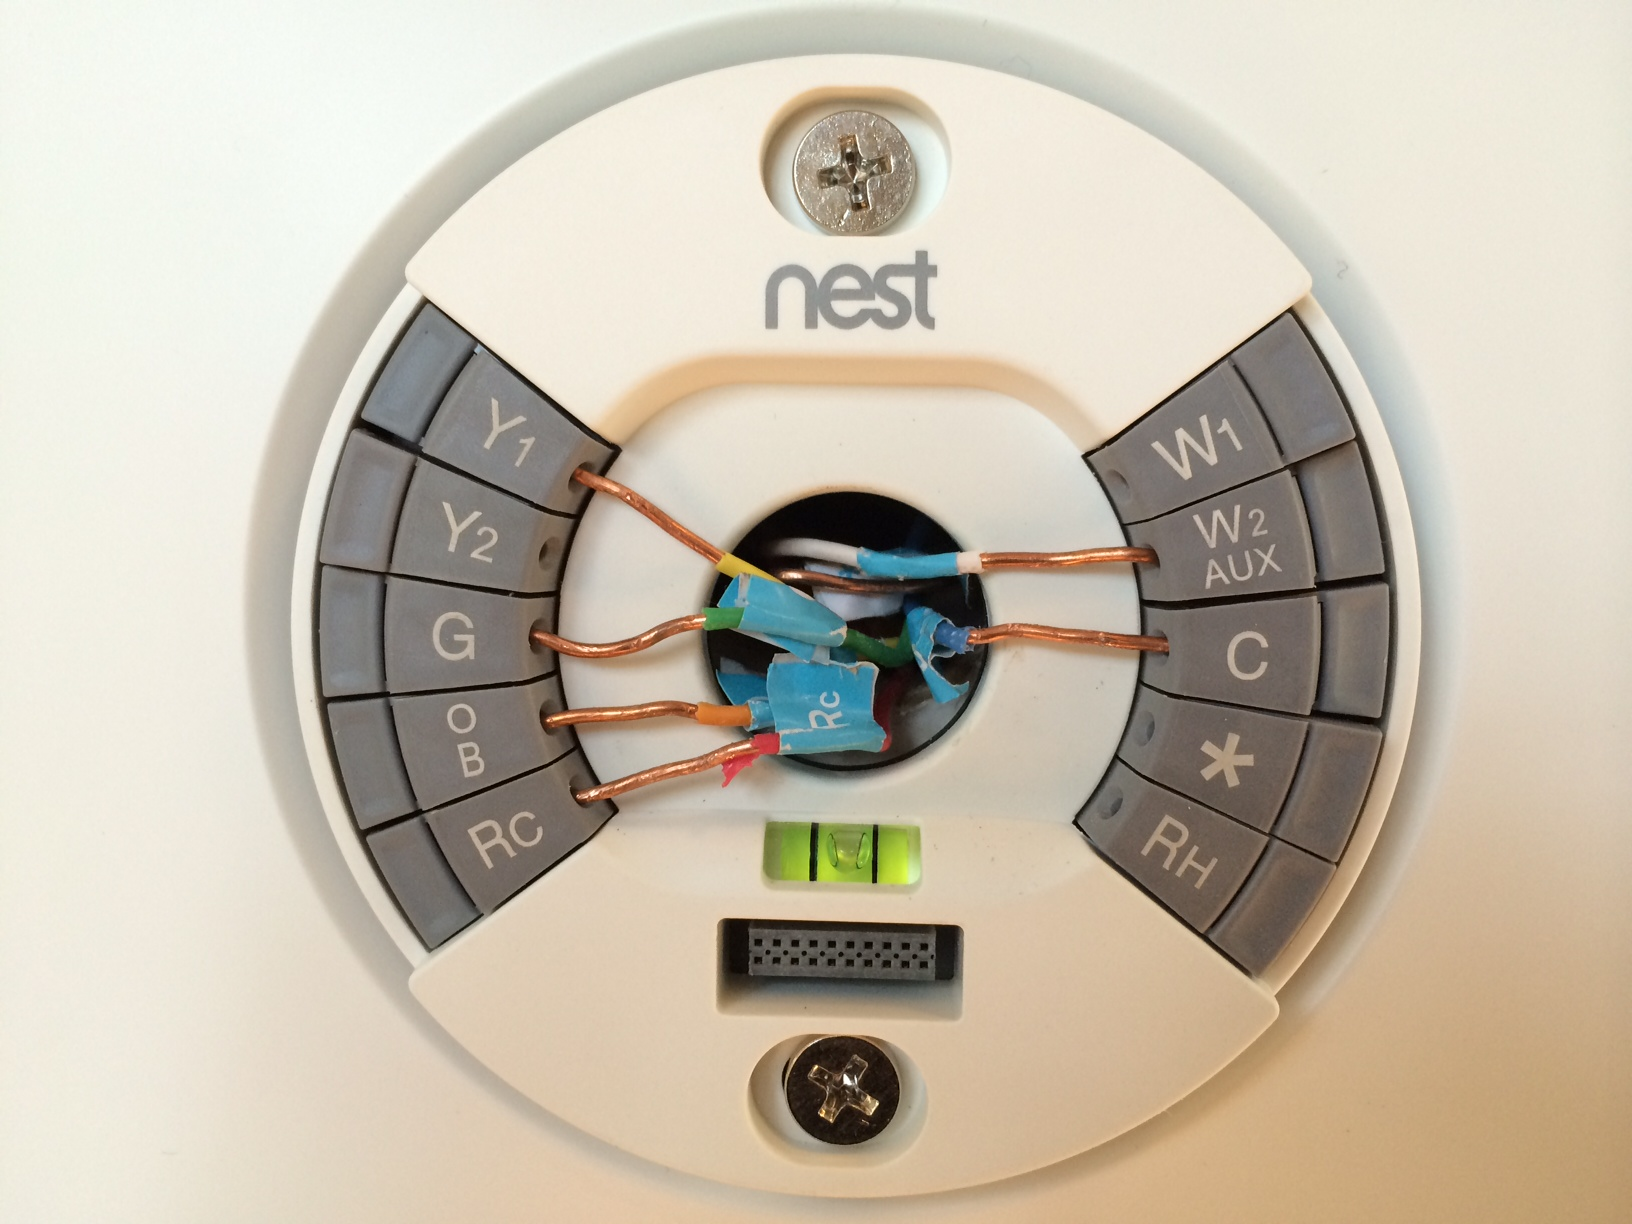 hight resolution of photos of nest thermostat hydronic heating